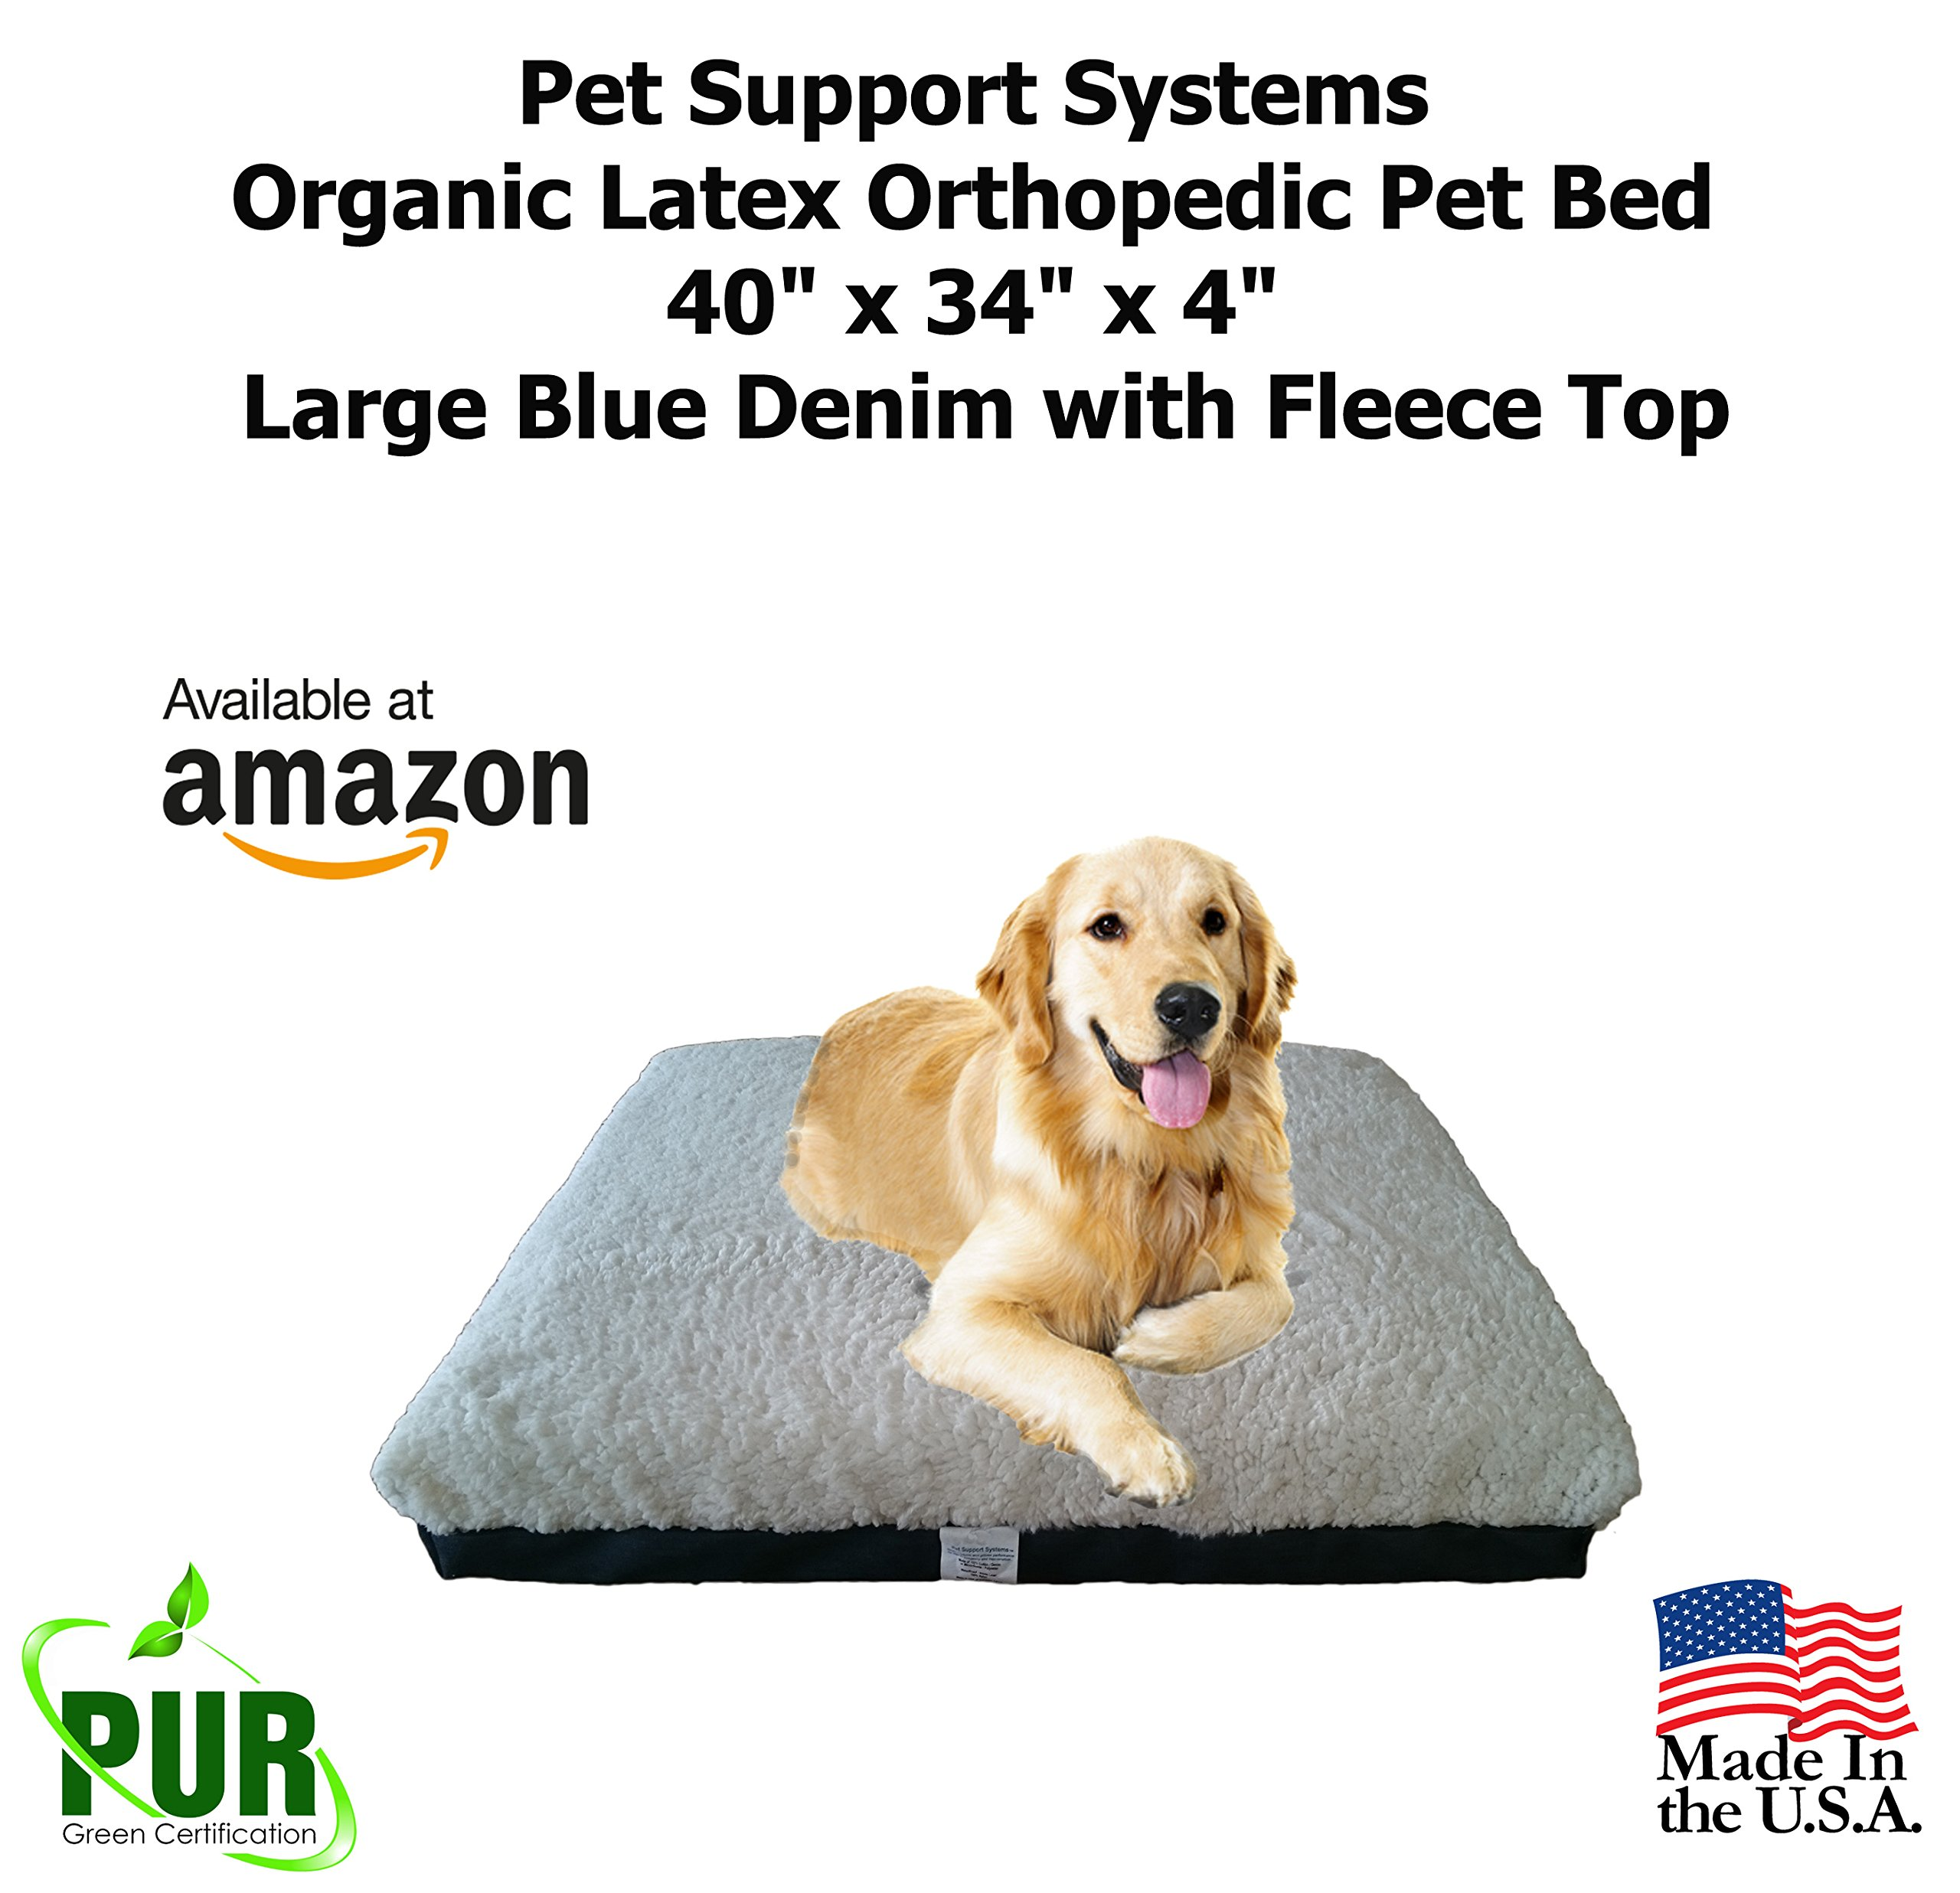 Certified Natural Organic | Large Latex Orthopedic Pet Bed | Large Breed 40'' x 34'' x 4'' Water Resistant Dog Bed | Blue Denim with Fleece Top